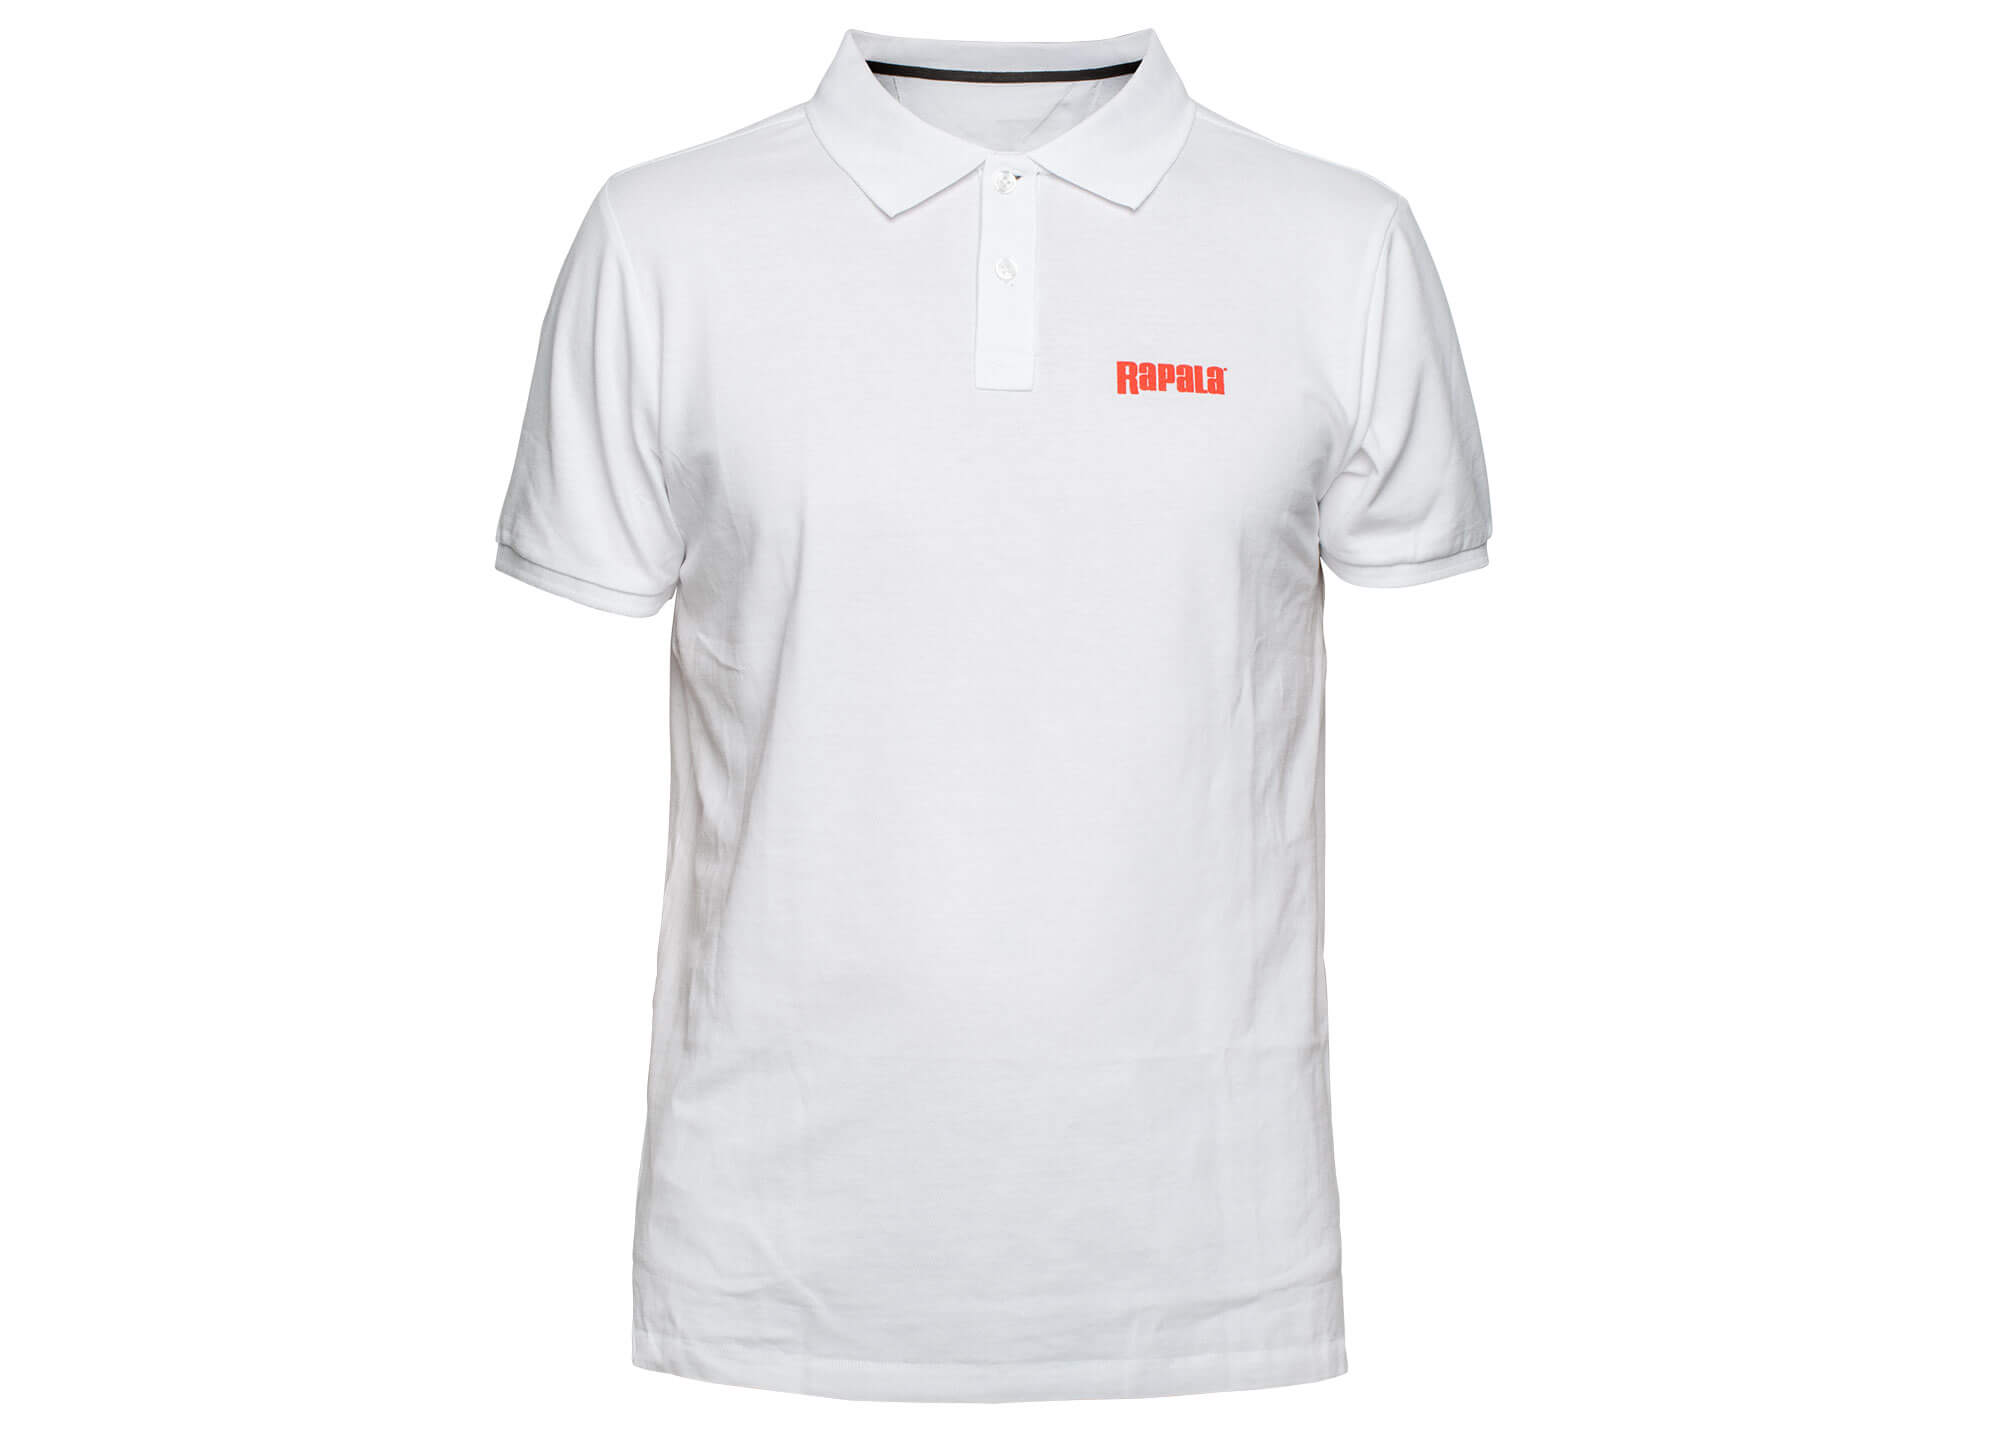 Rapala Polo T-Shirt - Big Pike